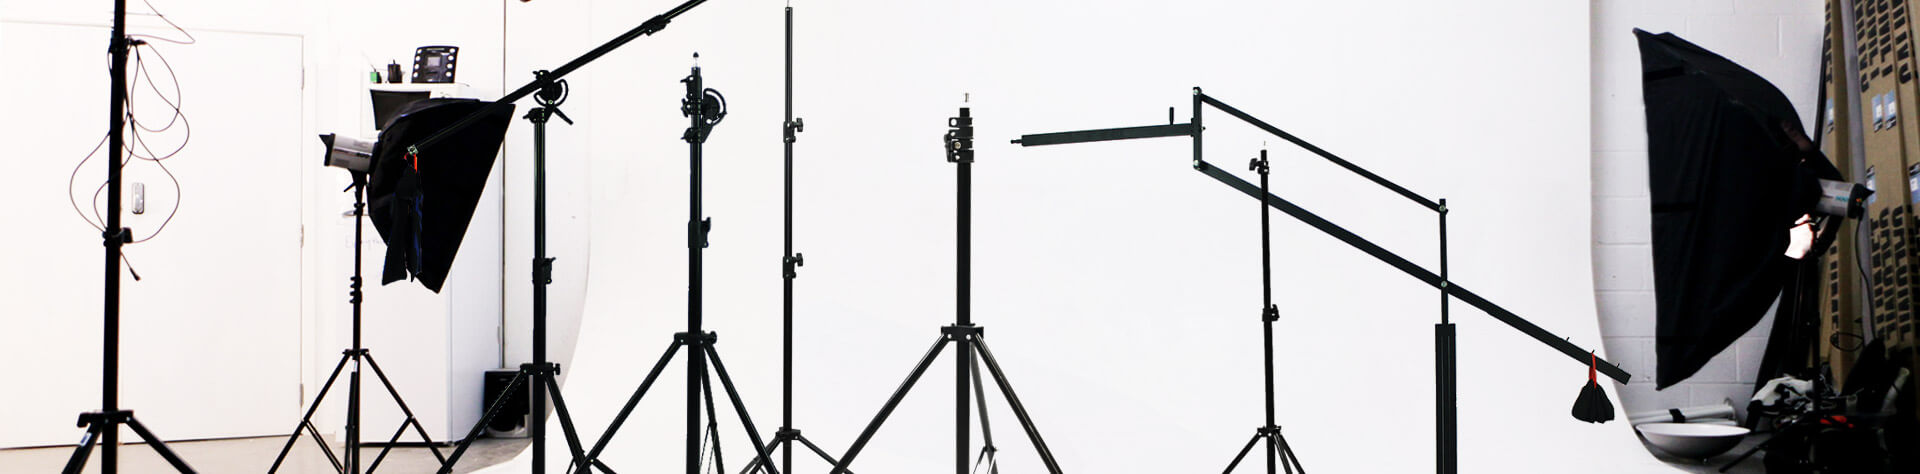 Photography Light Stand